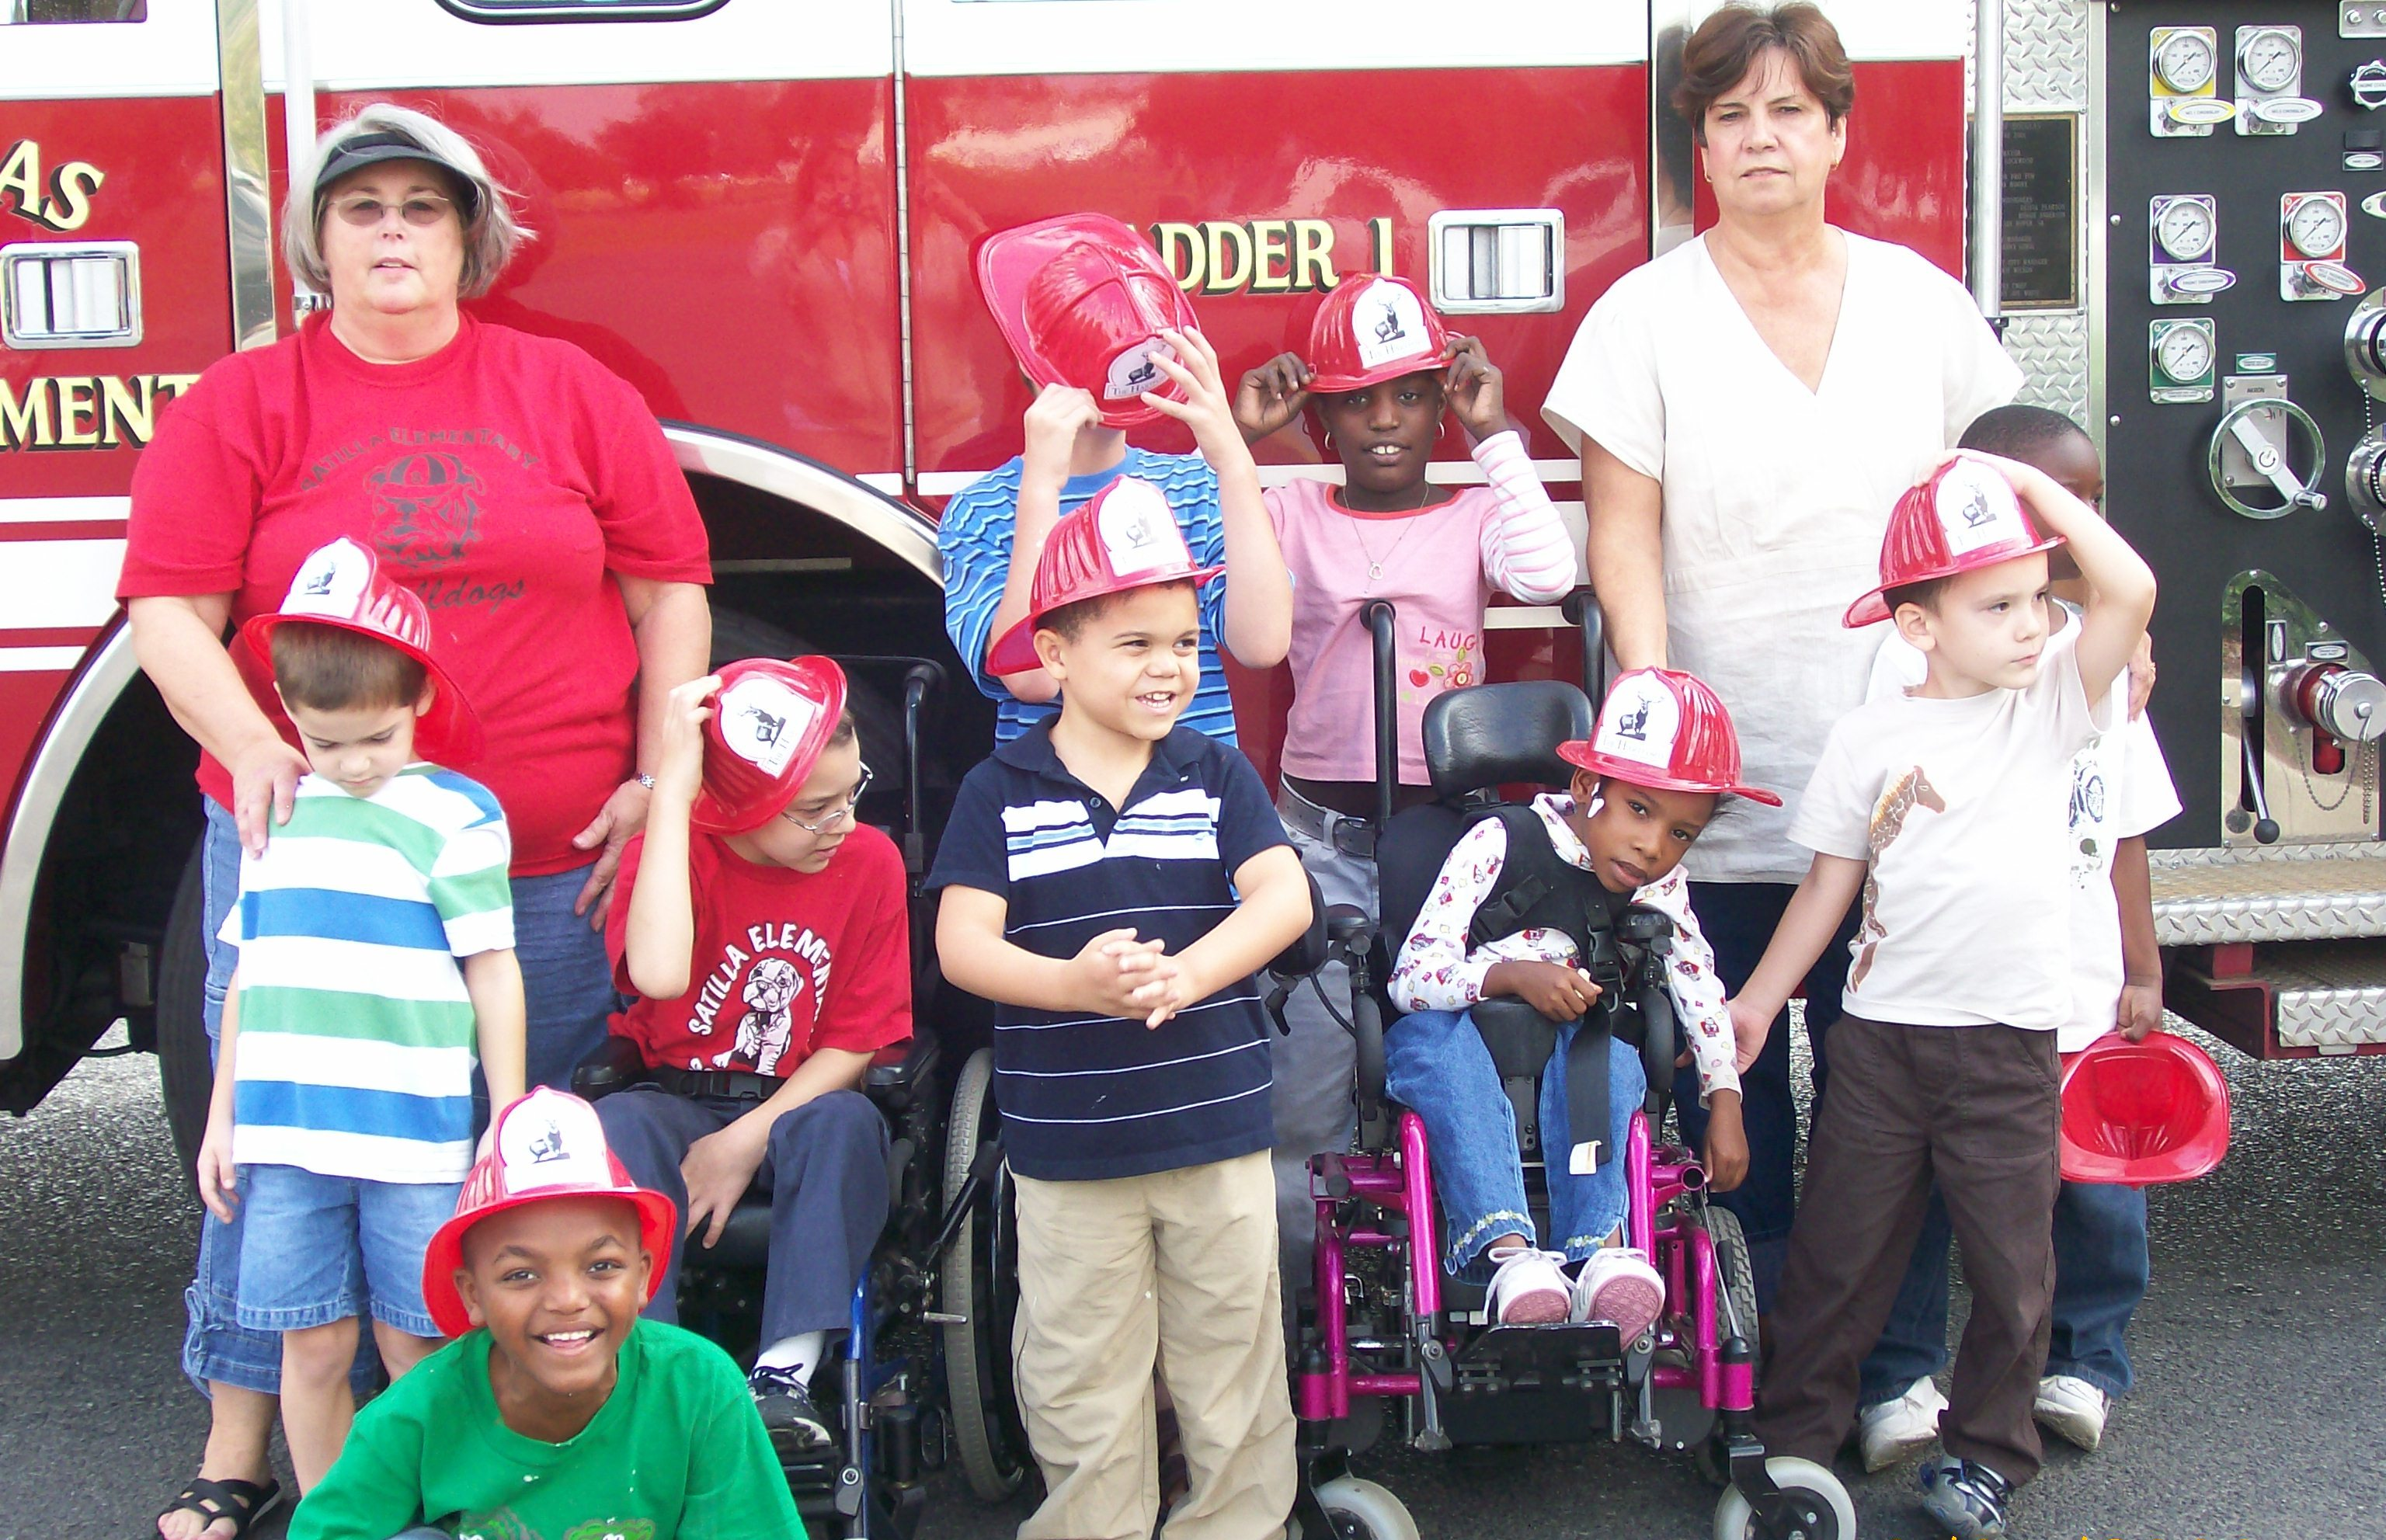 Children and chaperones stand next to fire truck